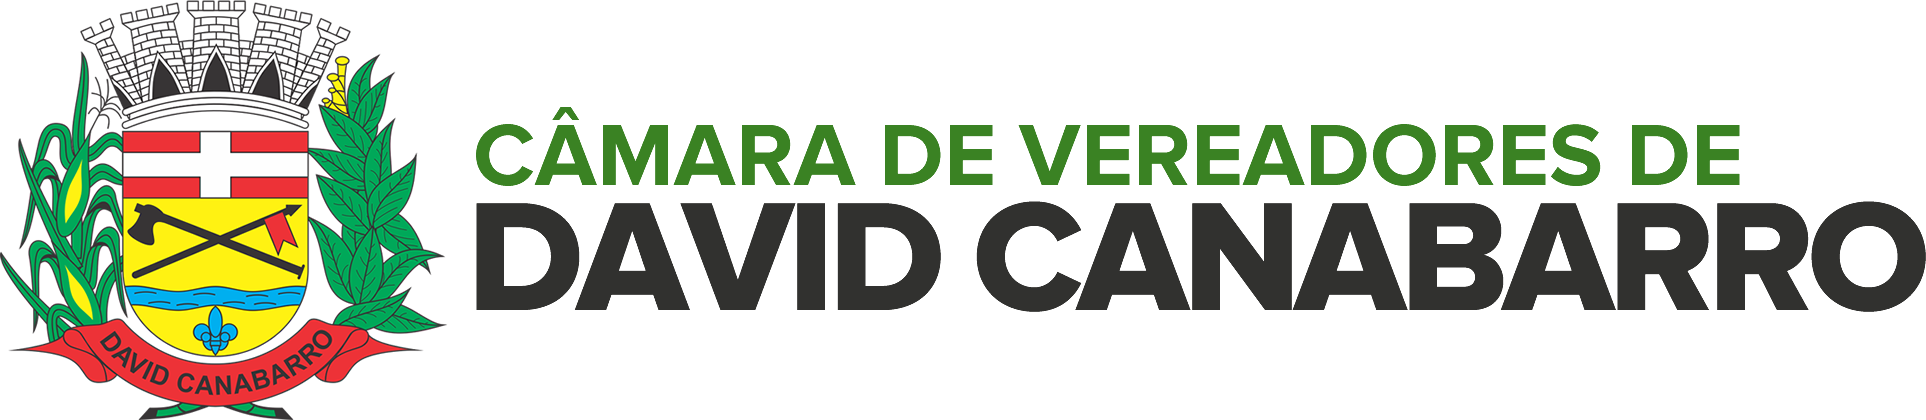 Logotipo da Câmara de David Canabarro